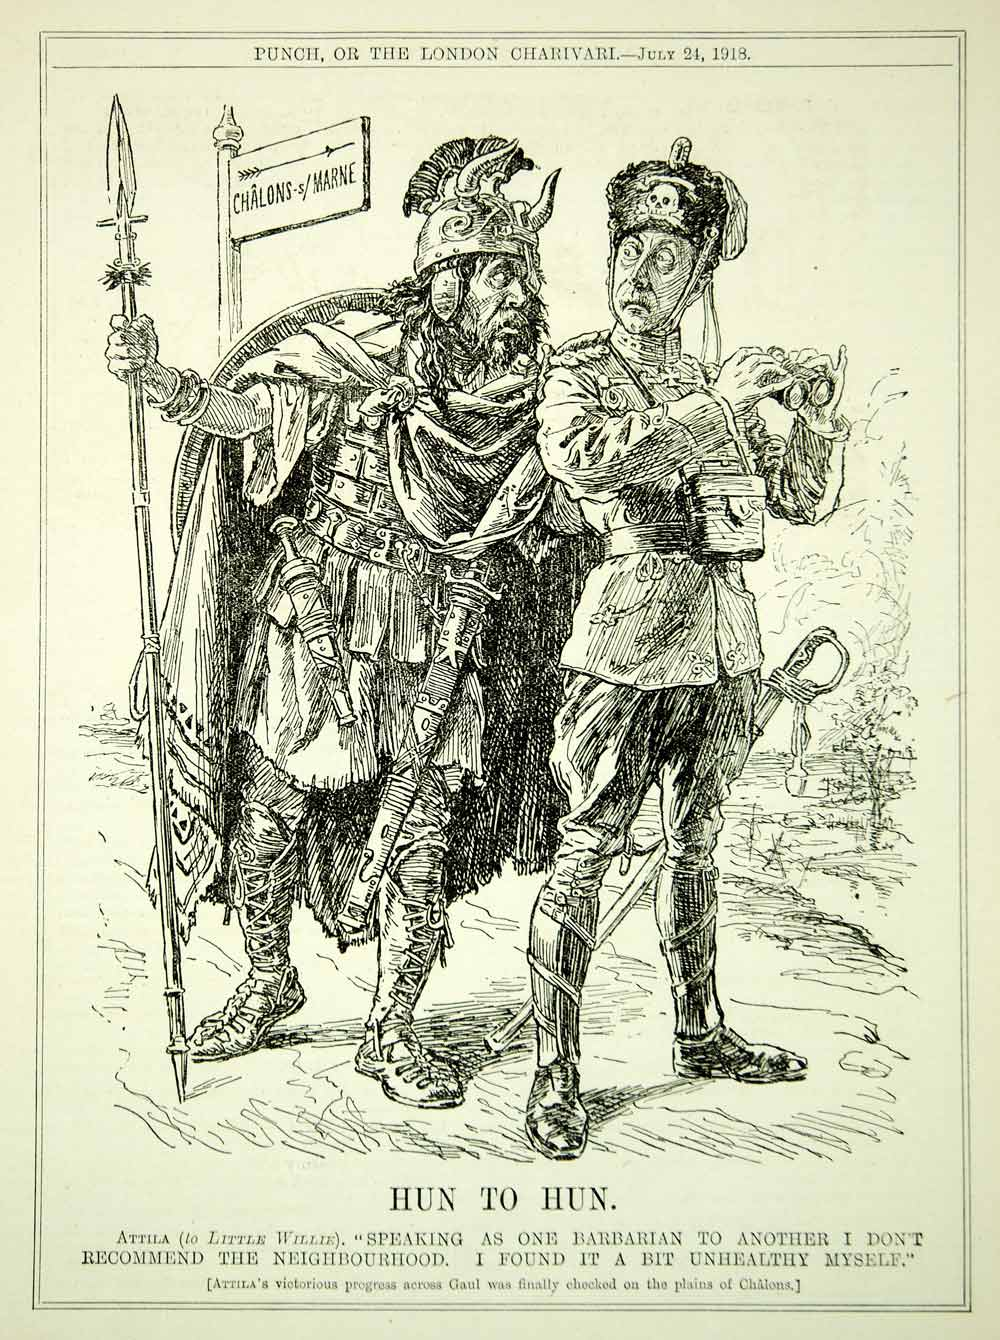 1918 Engraving WWI Cartoon PUNCH Attila the Hun Little Willie Chalons-sur-Marne